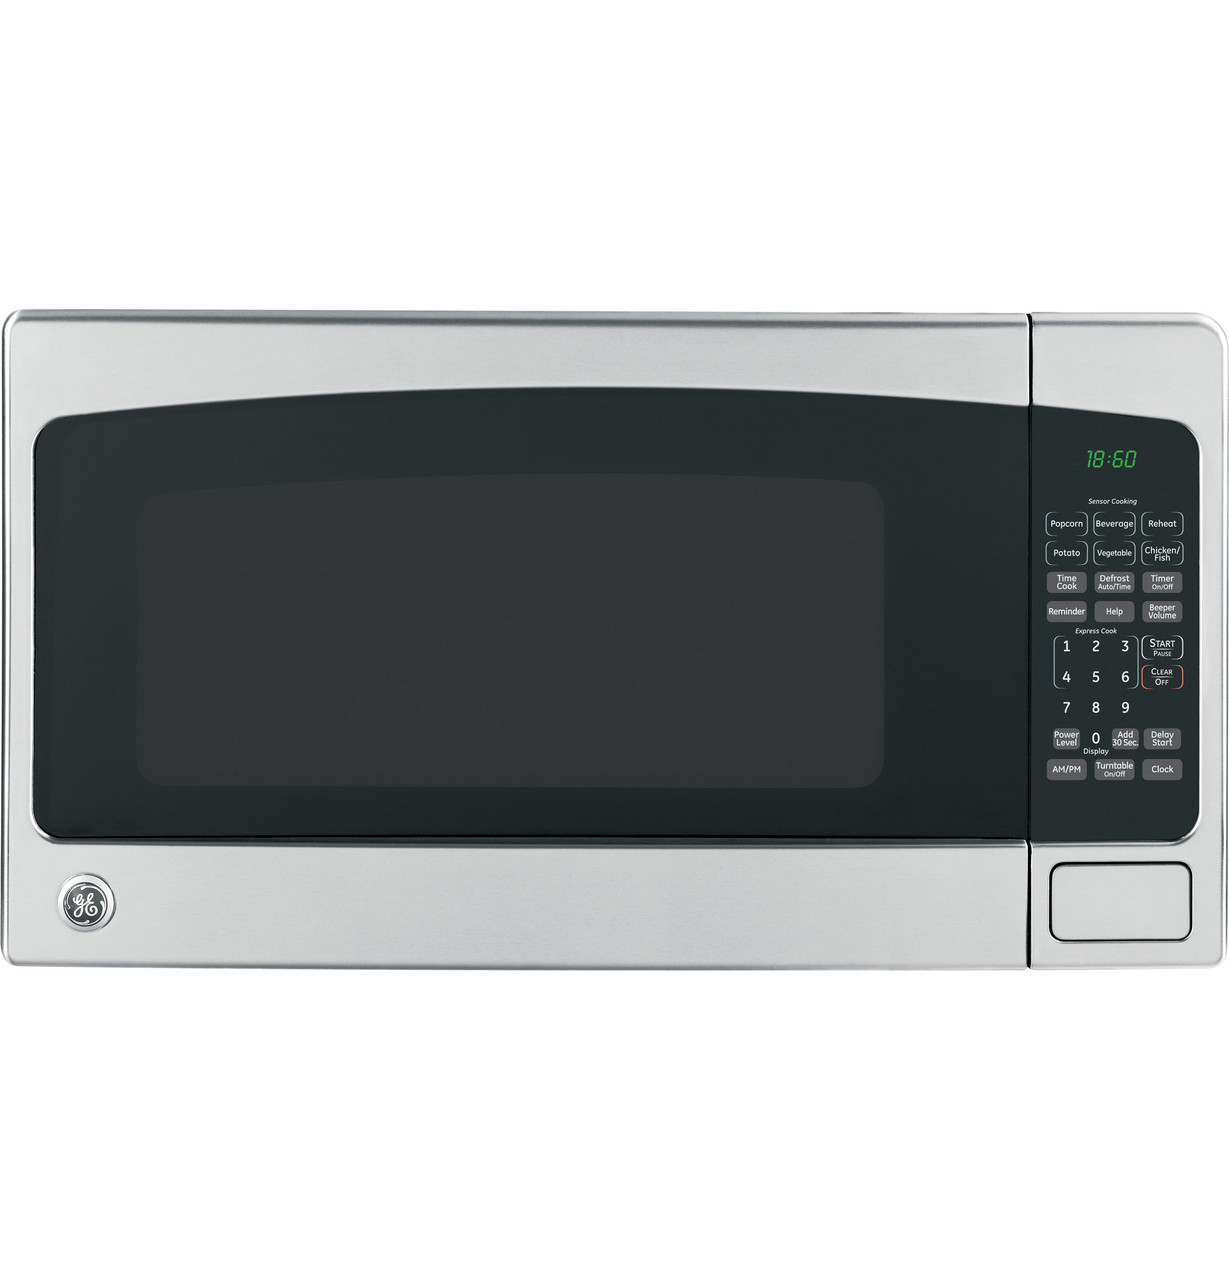 ge 1 8 cu ft countertop microwave oven jeb1860smss